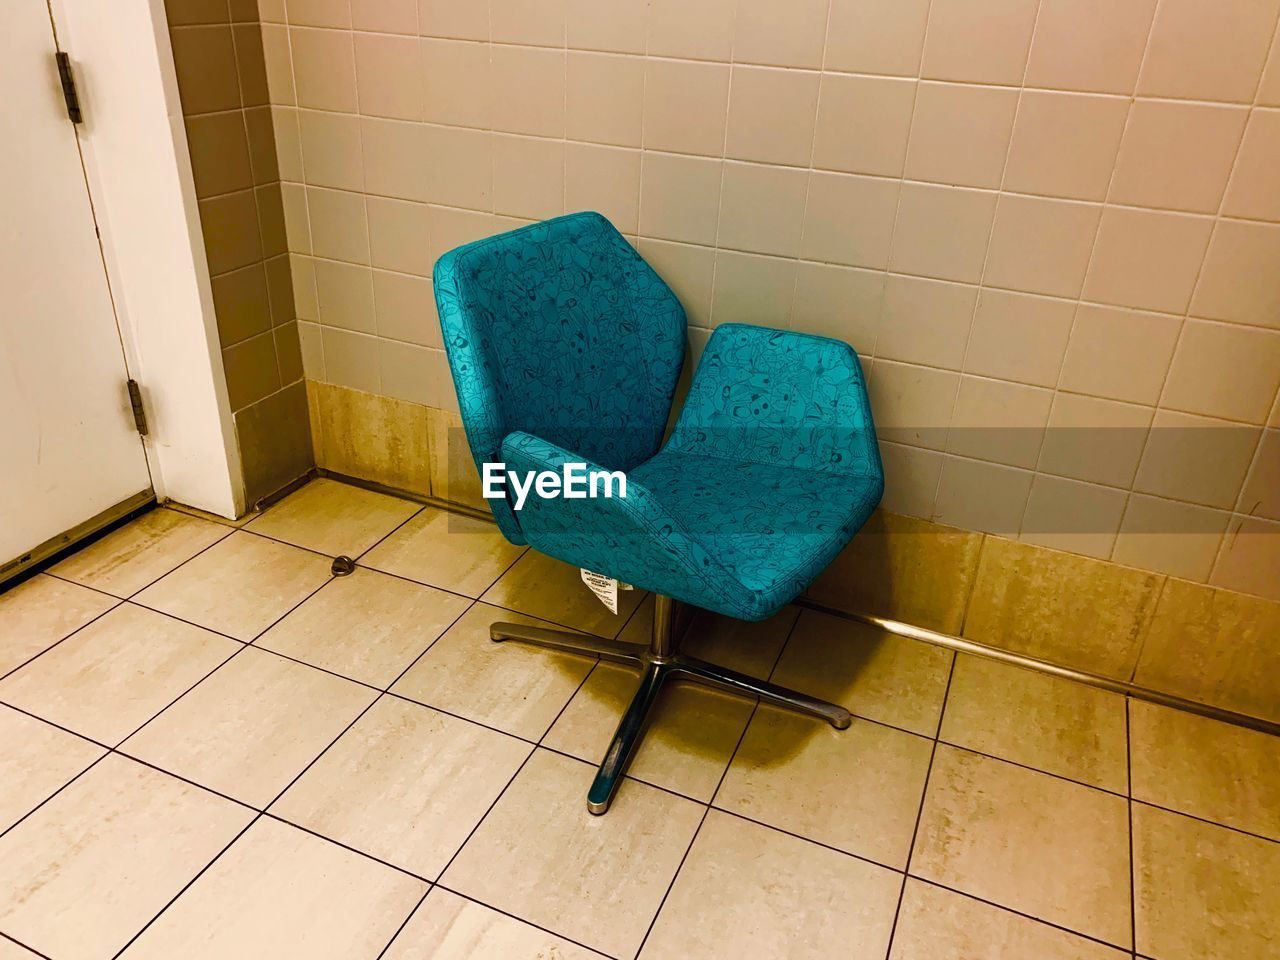 flooring, tile, indoors, tiled floor, blue, wall - building feature, domestic room, no people, seat, chair, home interior, absence, furniture, home, bathroom, still life, hygiene, empty, armchair, wall, clean, turquoise colored